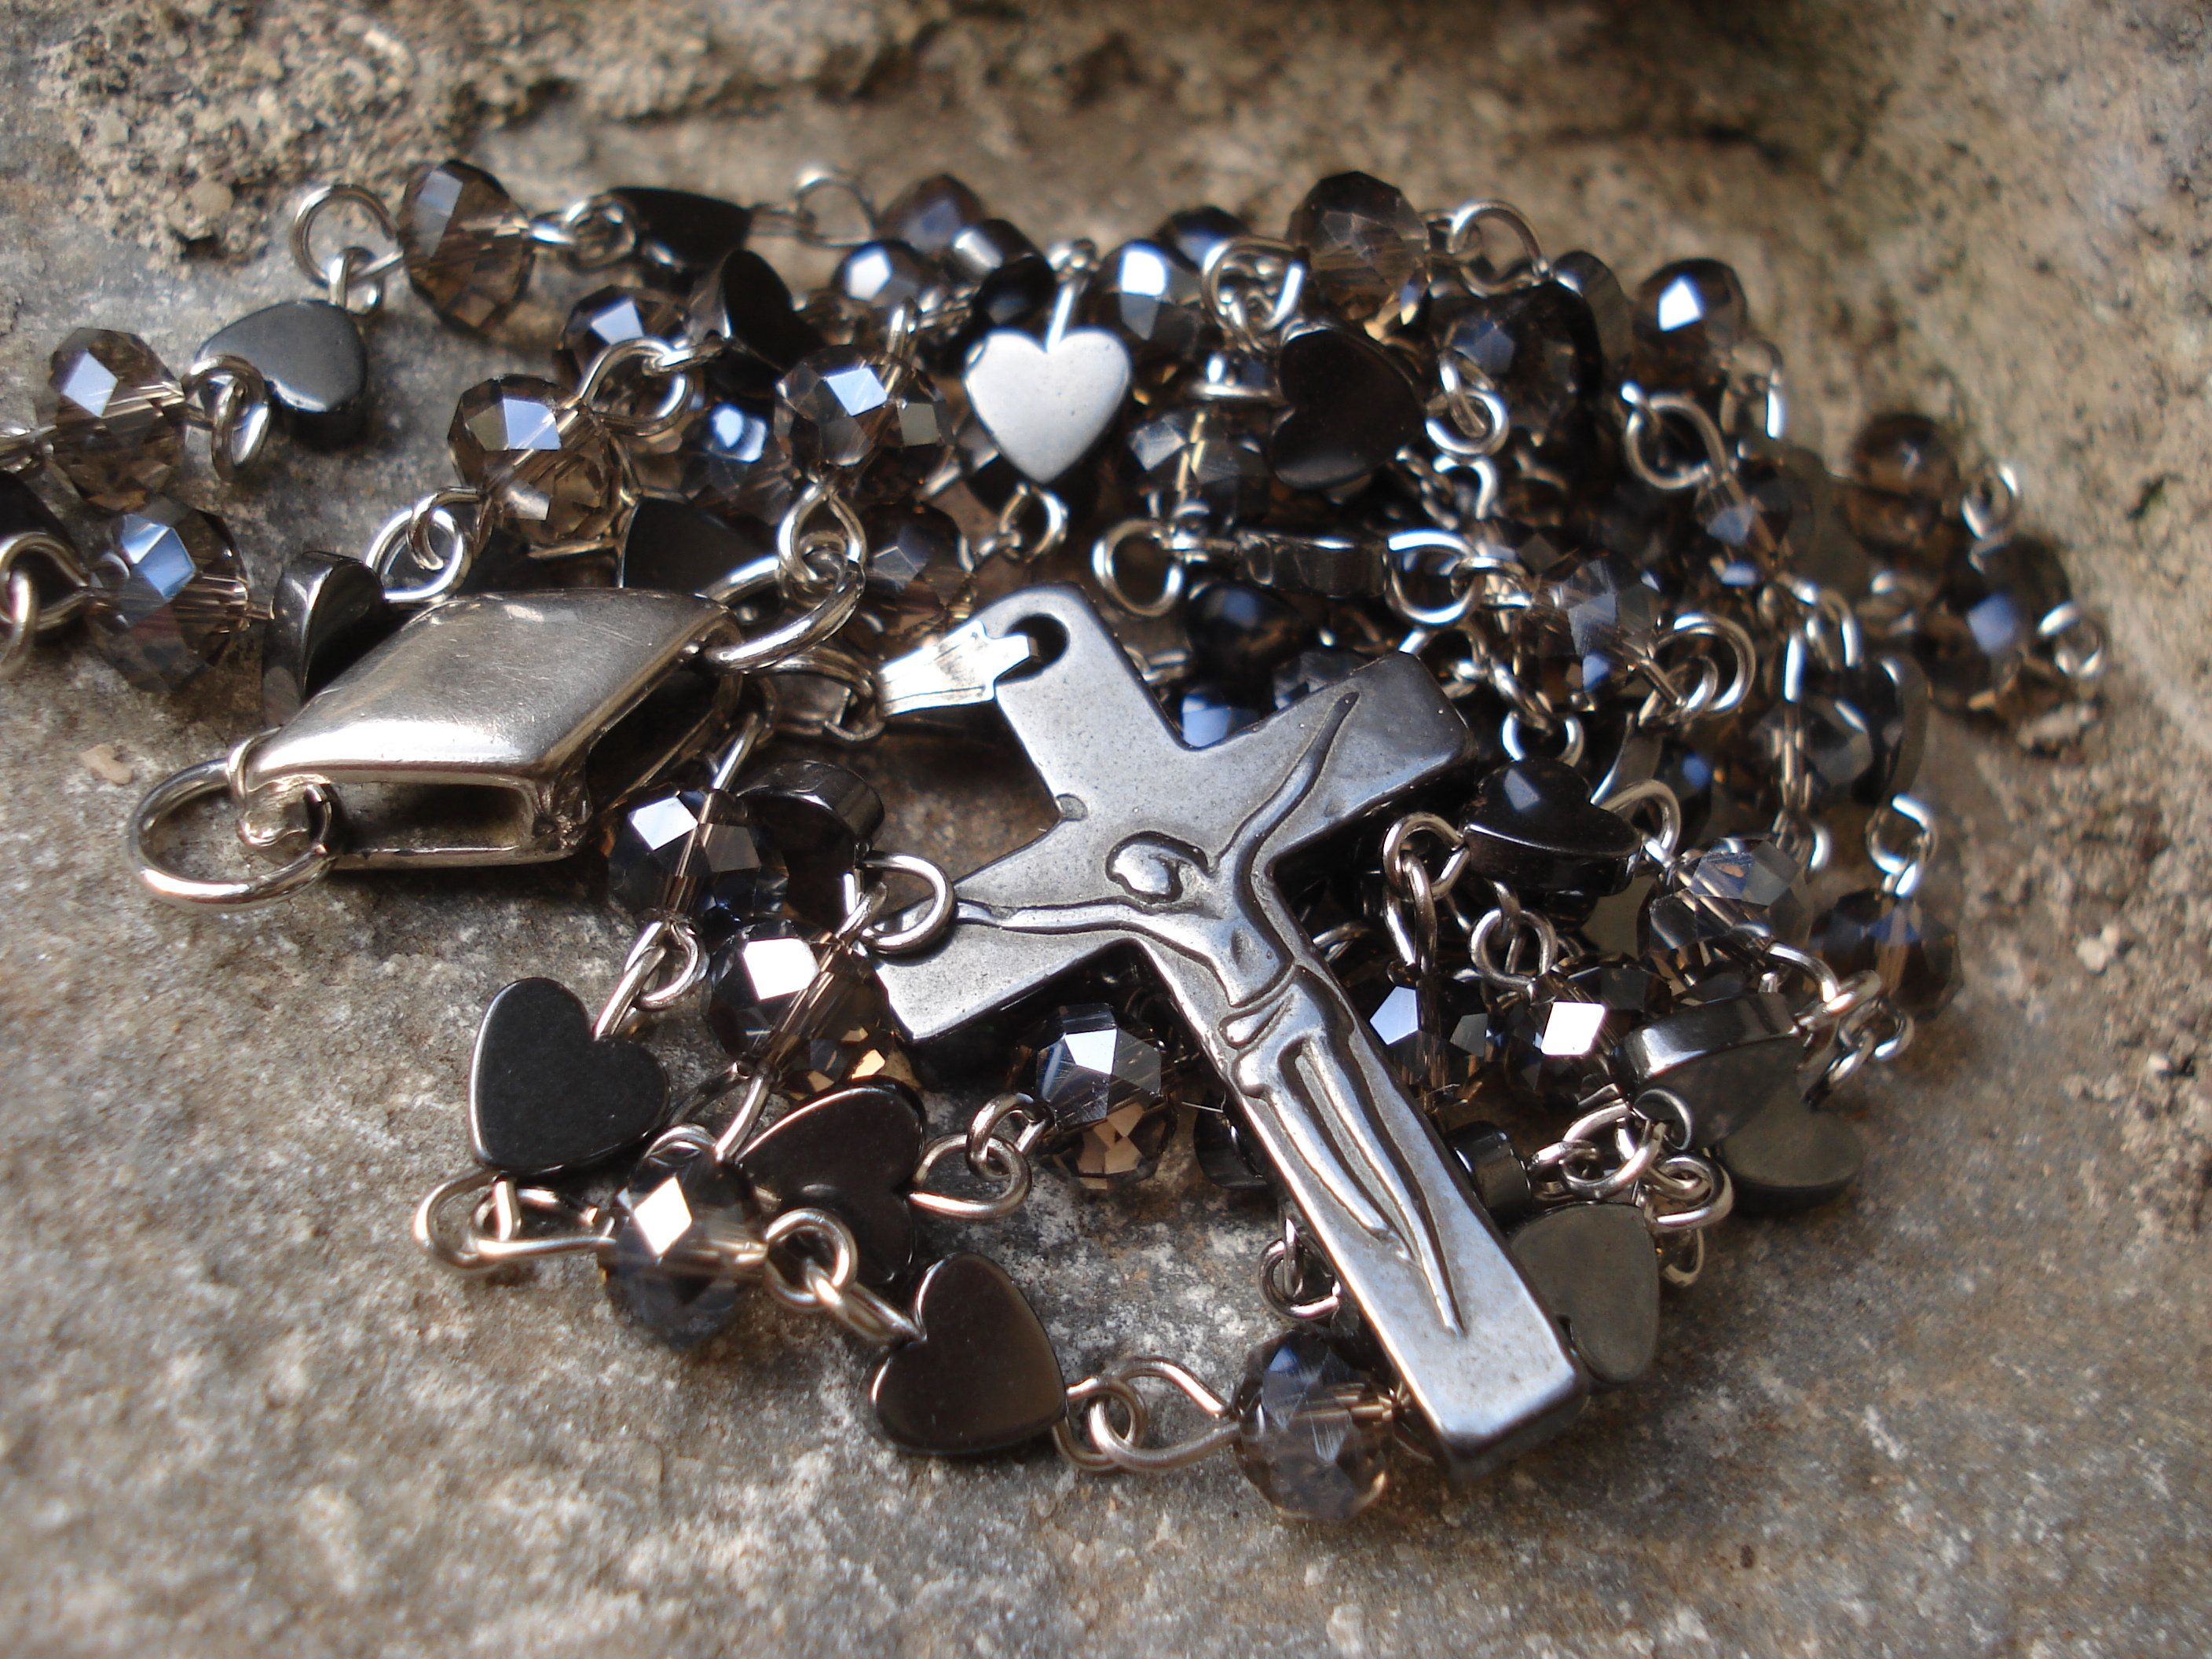 Rosary Necklace Hematite Crucifix Cross Beaded Hematite & Crystals Unique Rosary Necklace Religious Handcrafted Gemstone Rosary Jewelry #rosaryjewelry